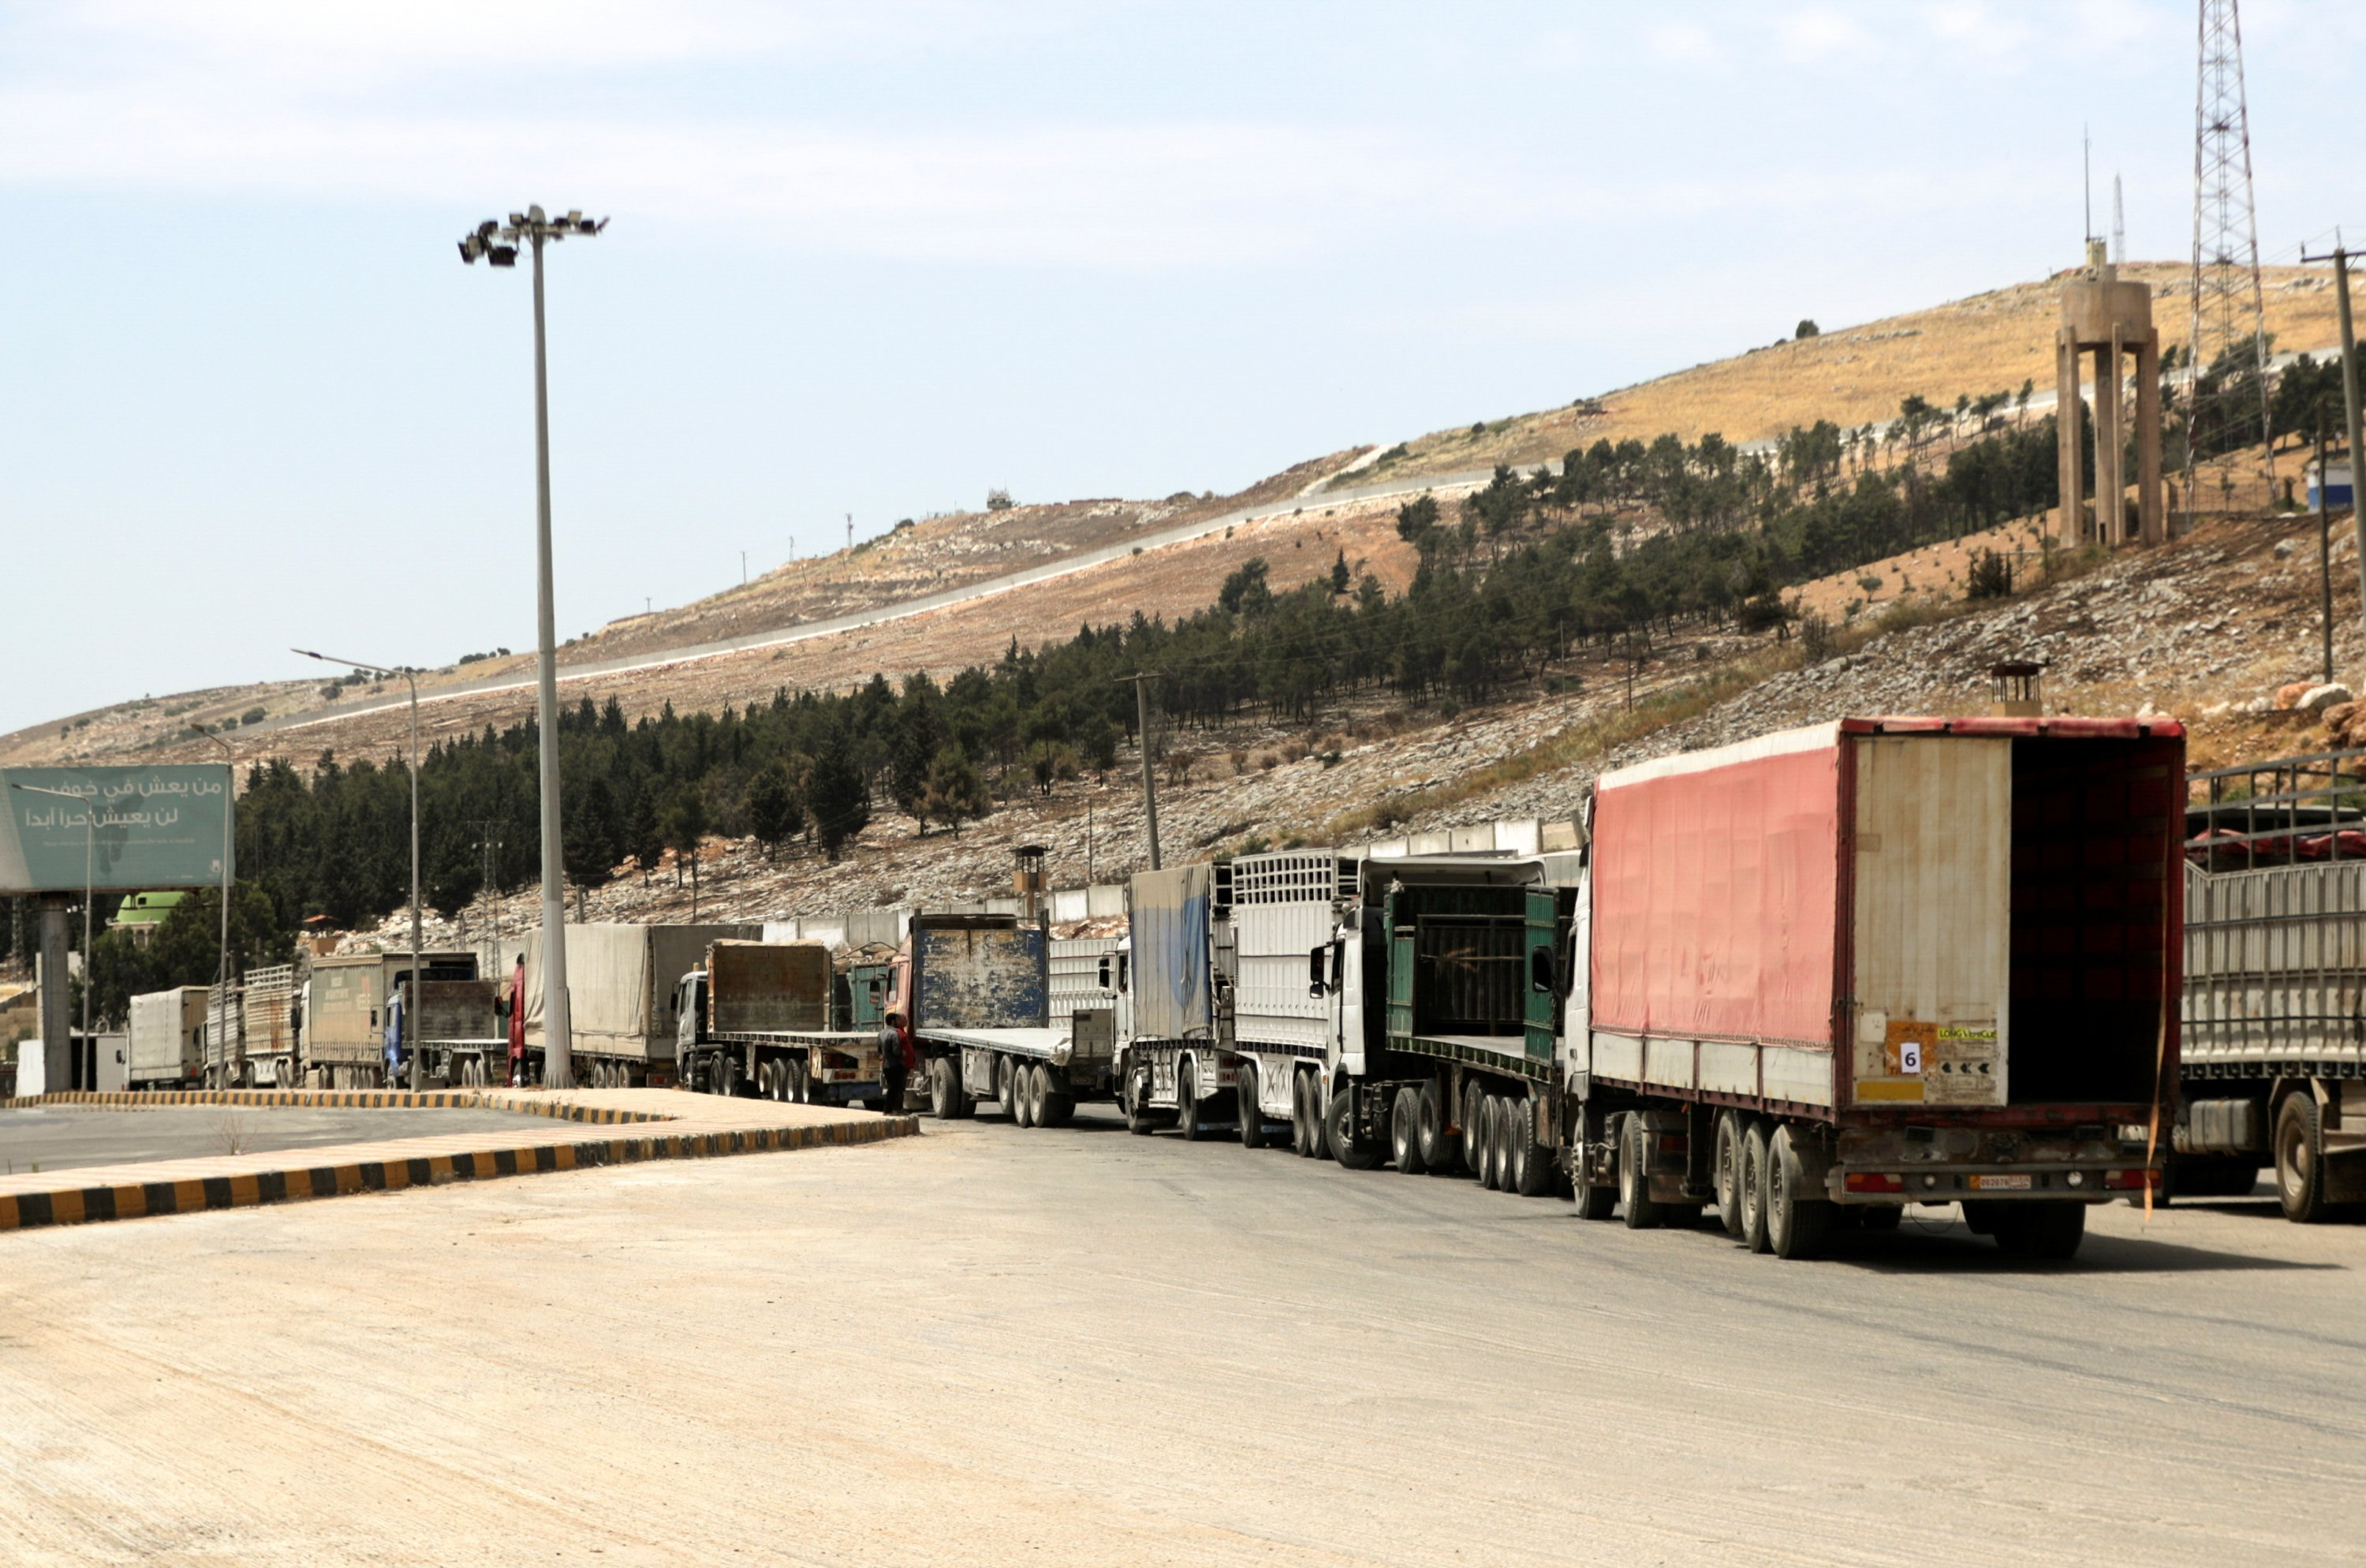 Vehicles wait at Bab al-Hawa crossing at the Syrian-Turkish border, in Idlib governorate, northwestern Syria, June 10, 2021. (REUTERS Photo)